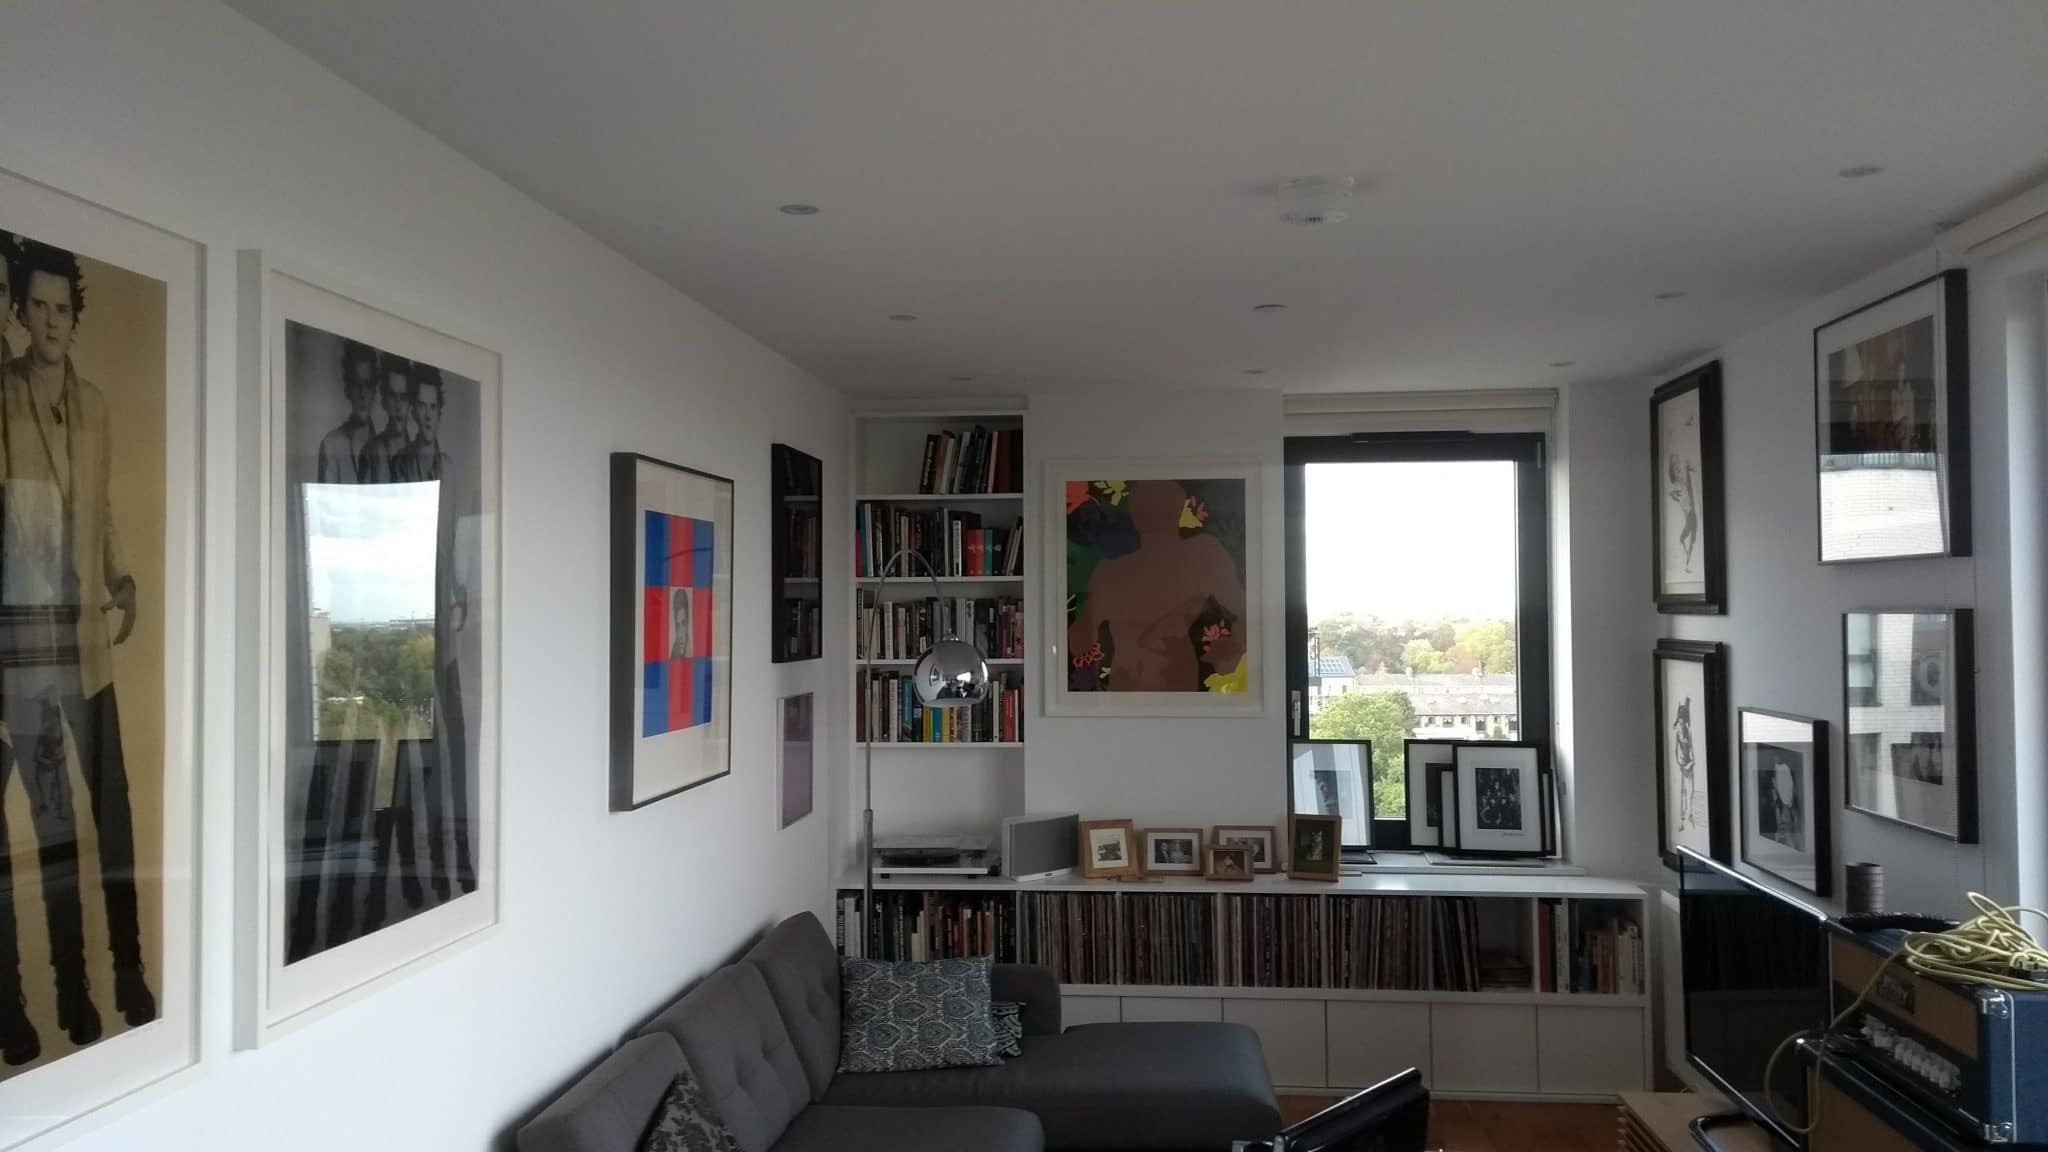 Large prints hung in a living room in Bethnal Green, London.